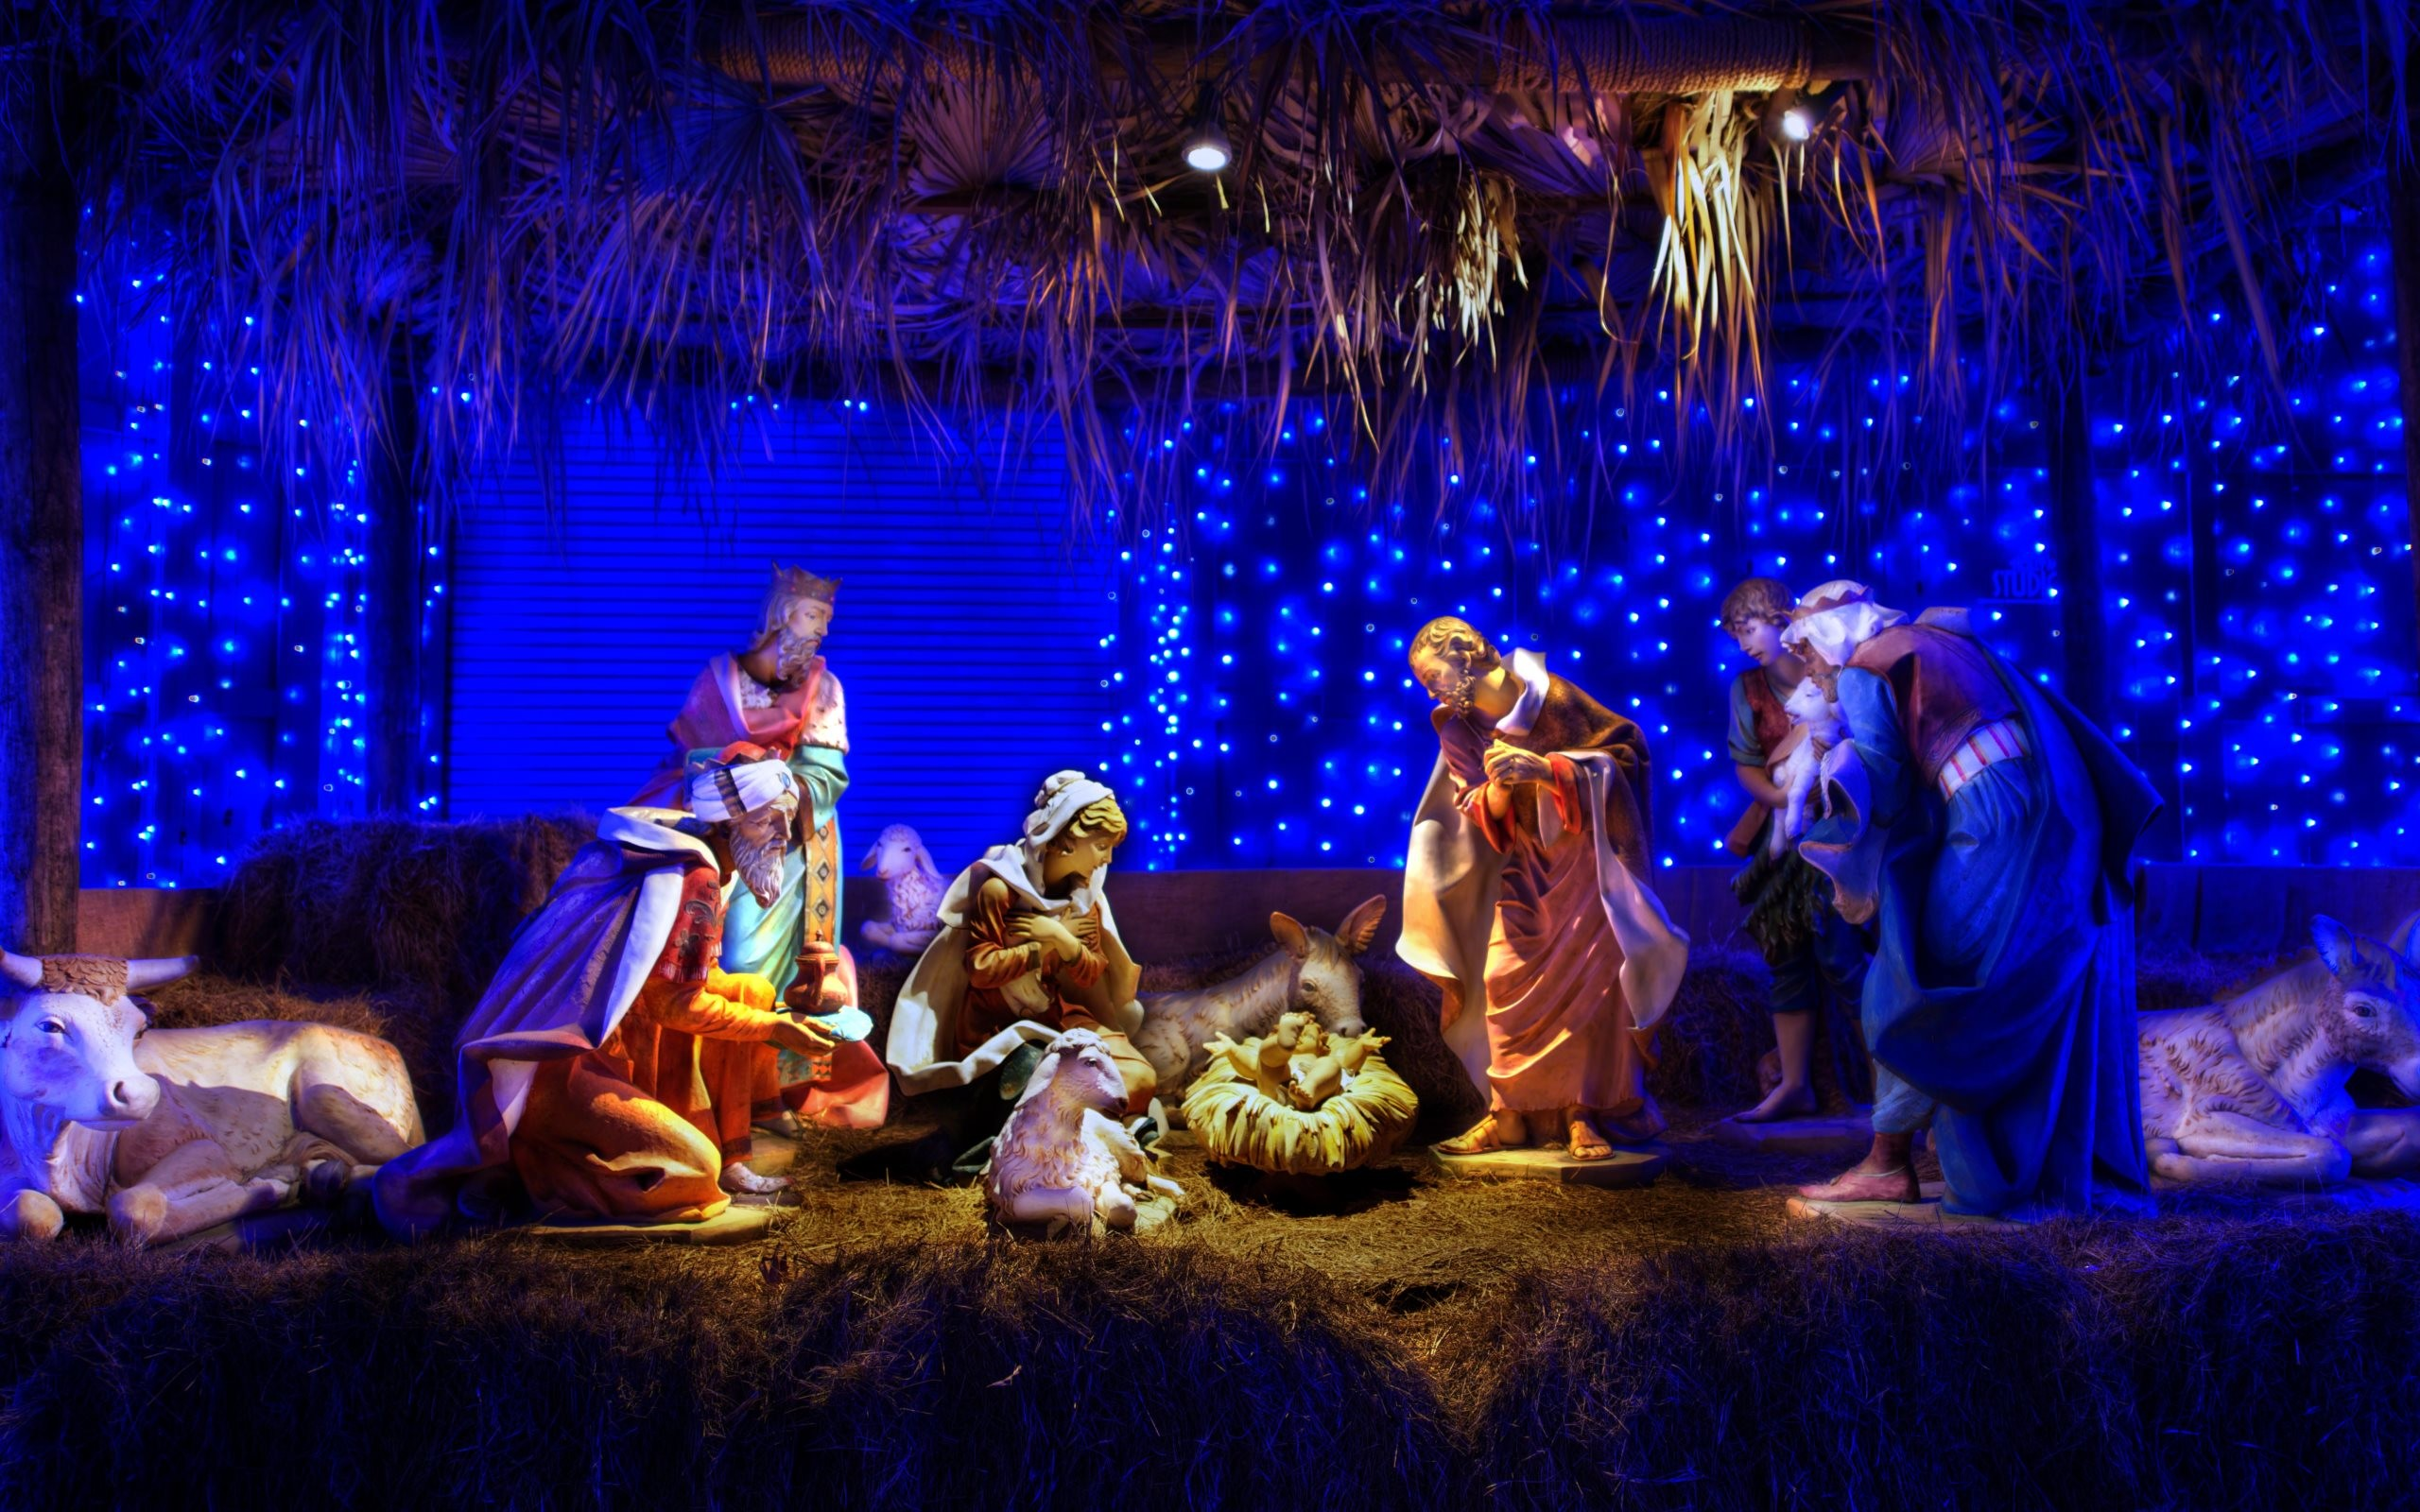 Christmas nativity scene wallpaper 59 images for Wall scenes